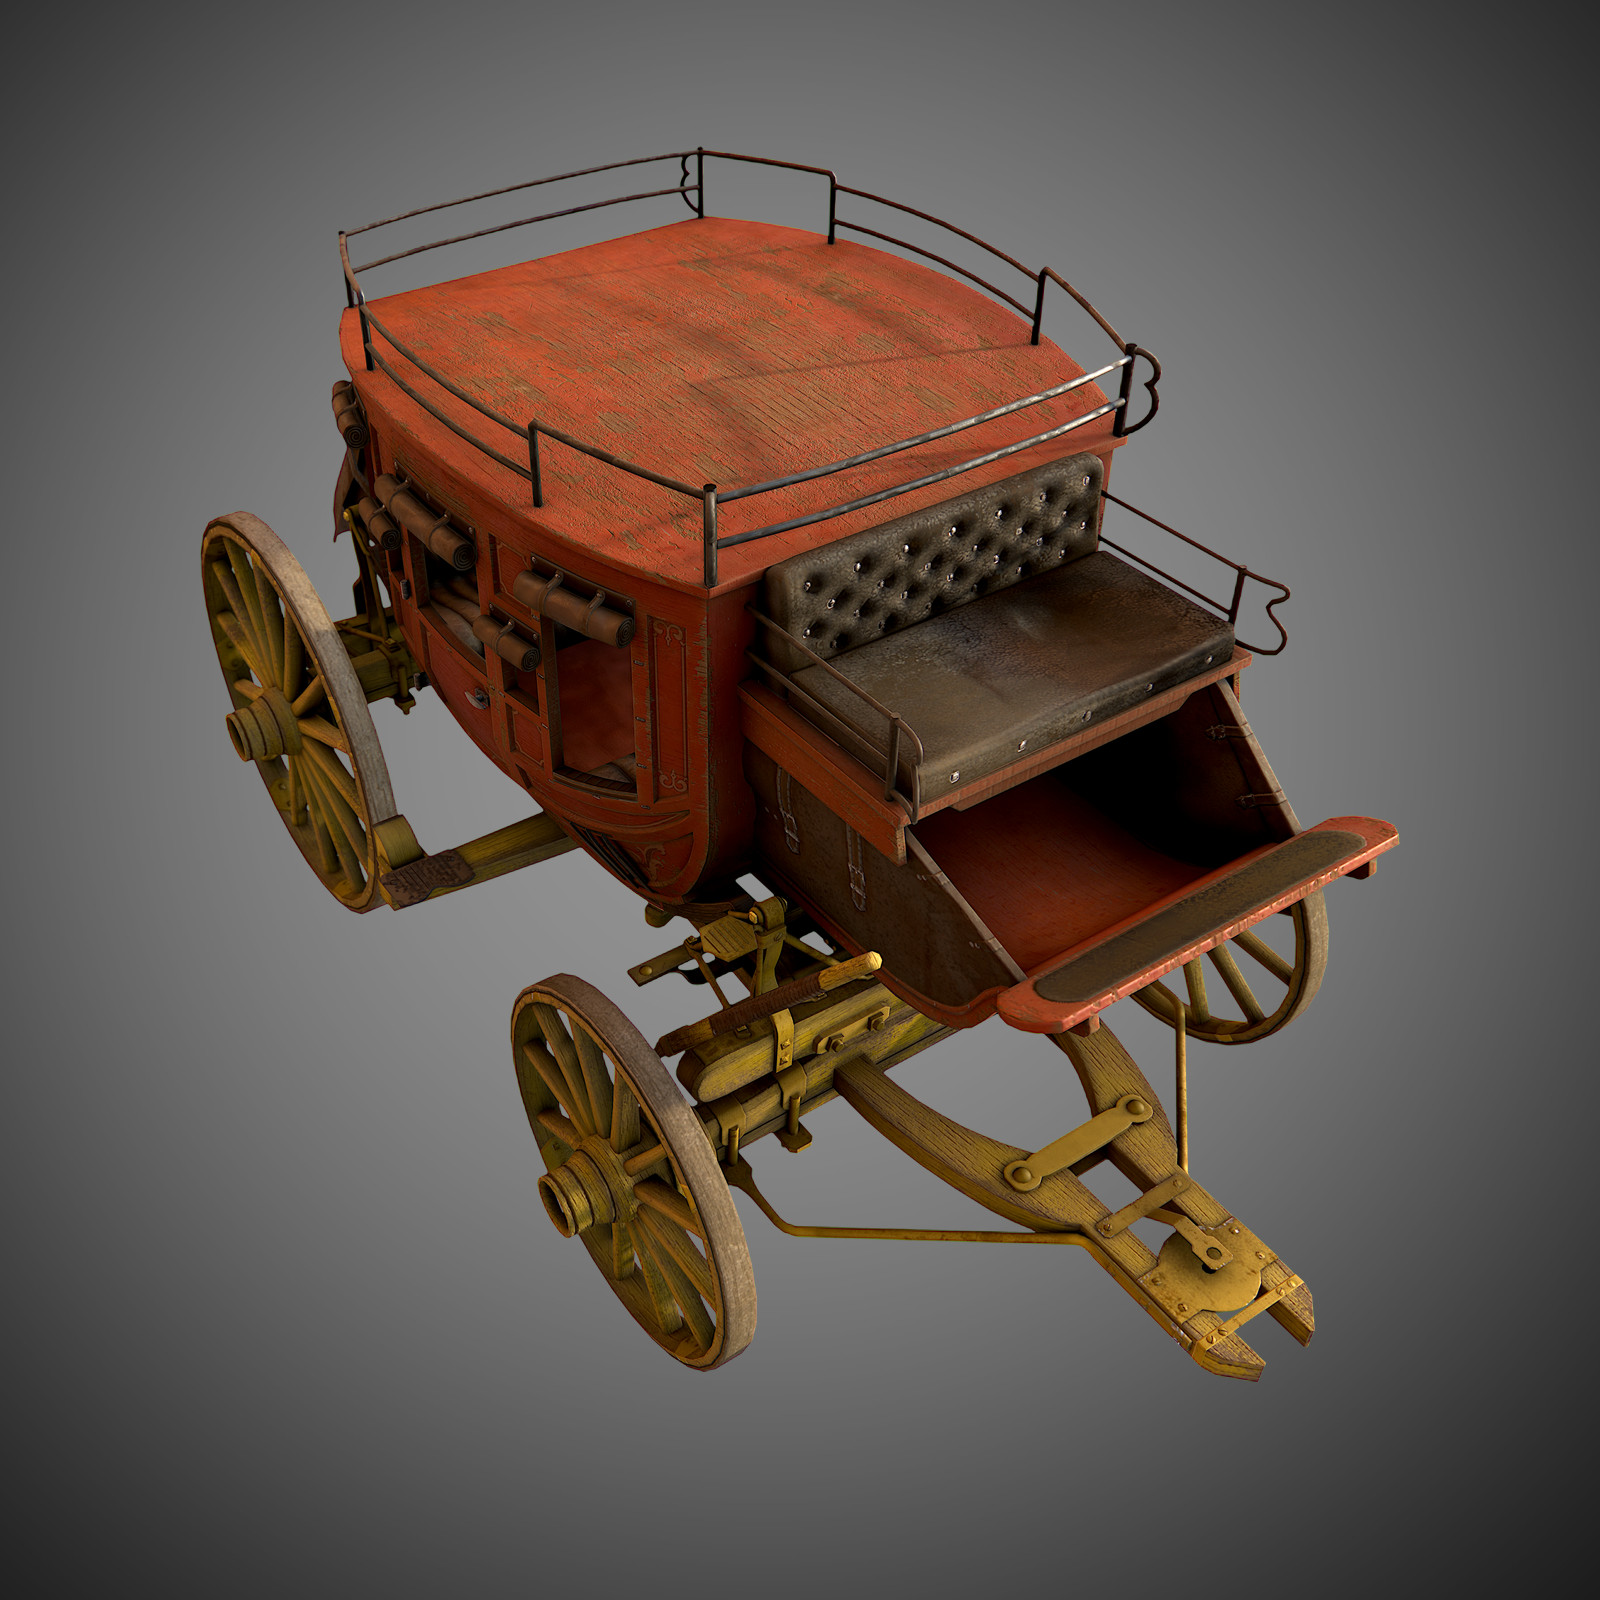 Paul fish stagecoach render 05